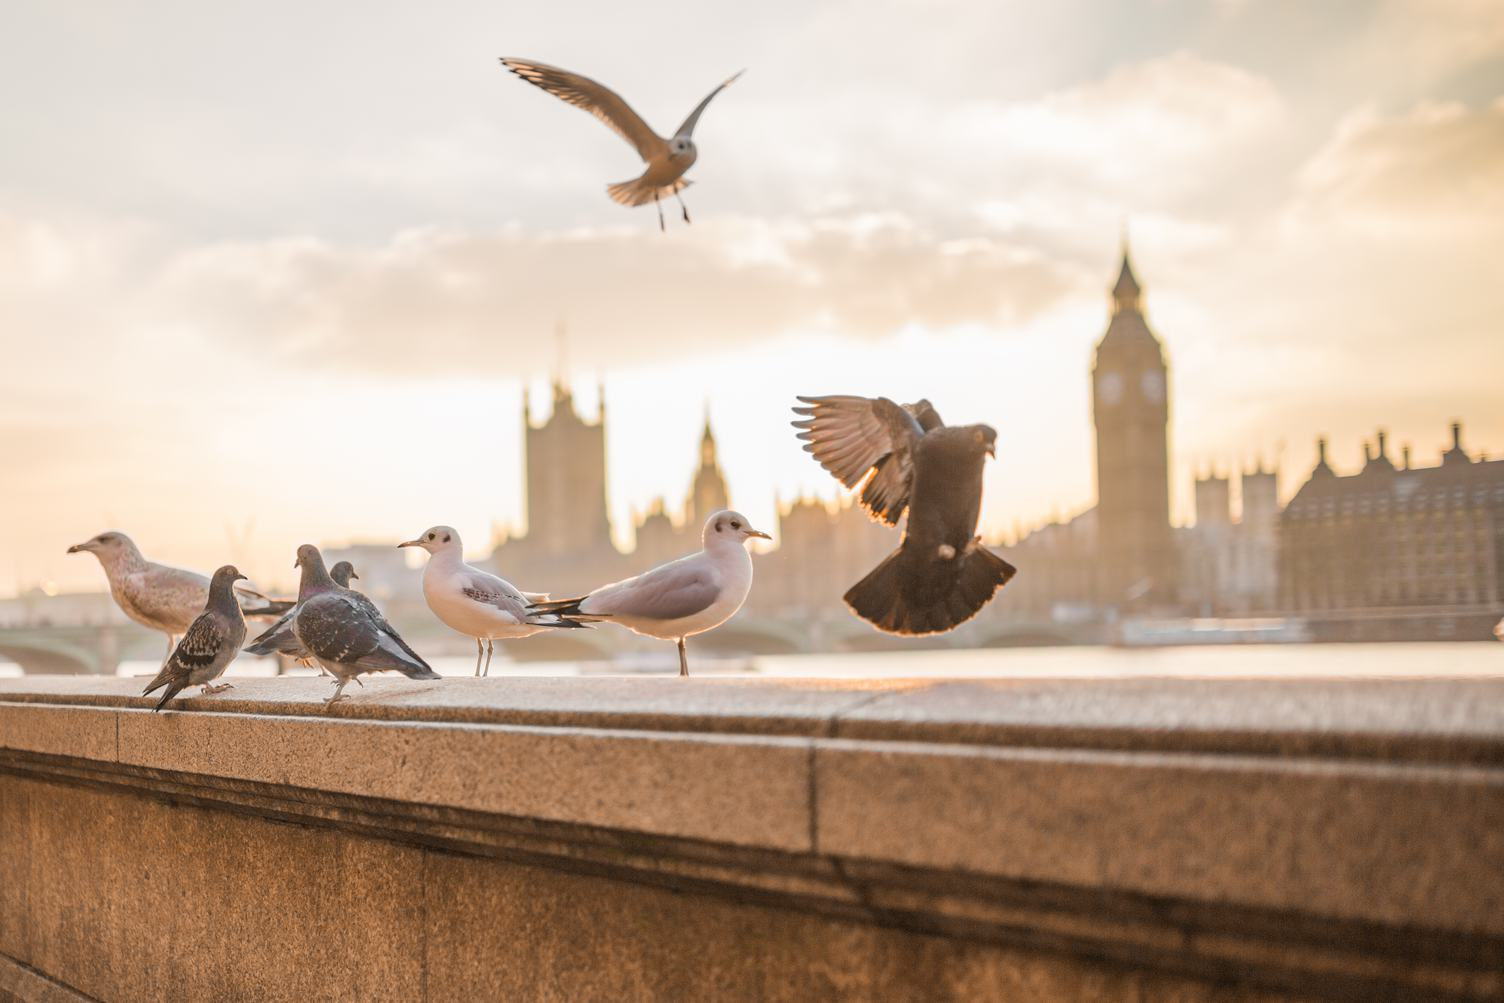 Pigeons and Seagulls Sitting on the Embankment of River Thames